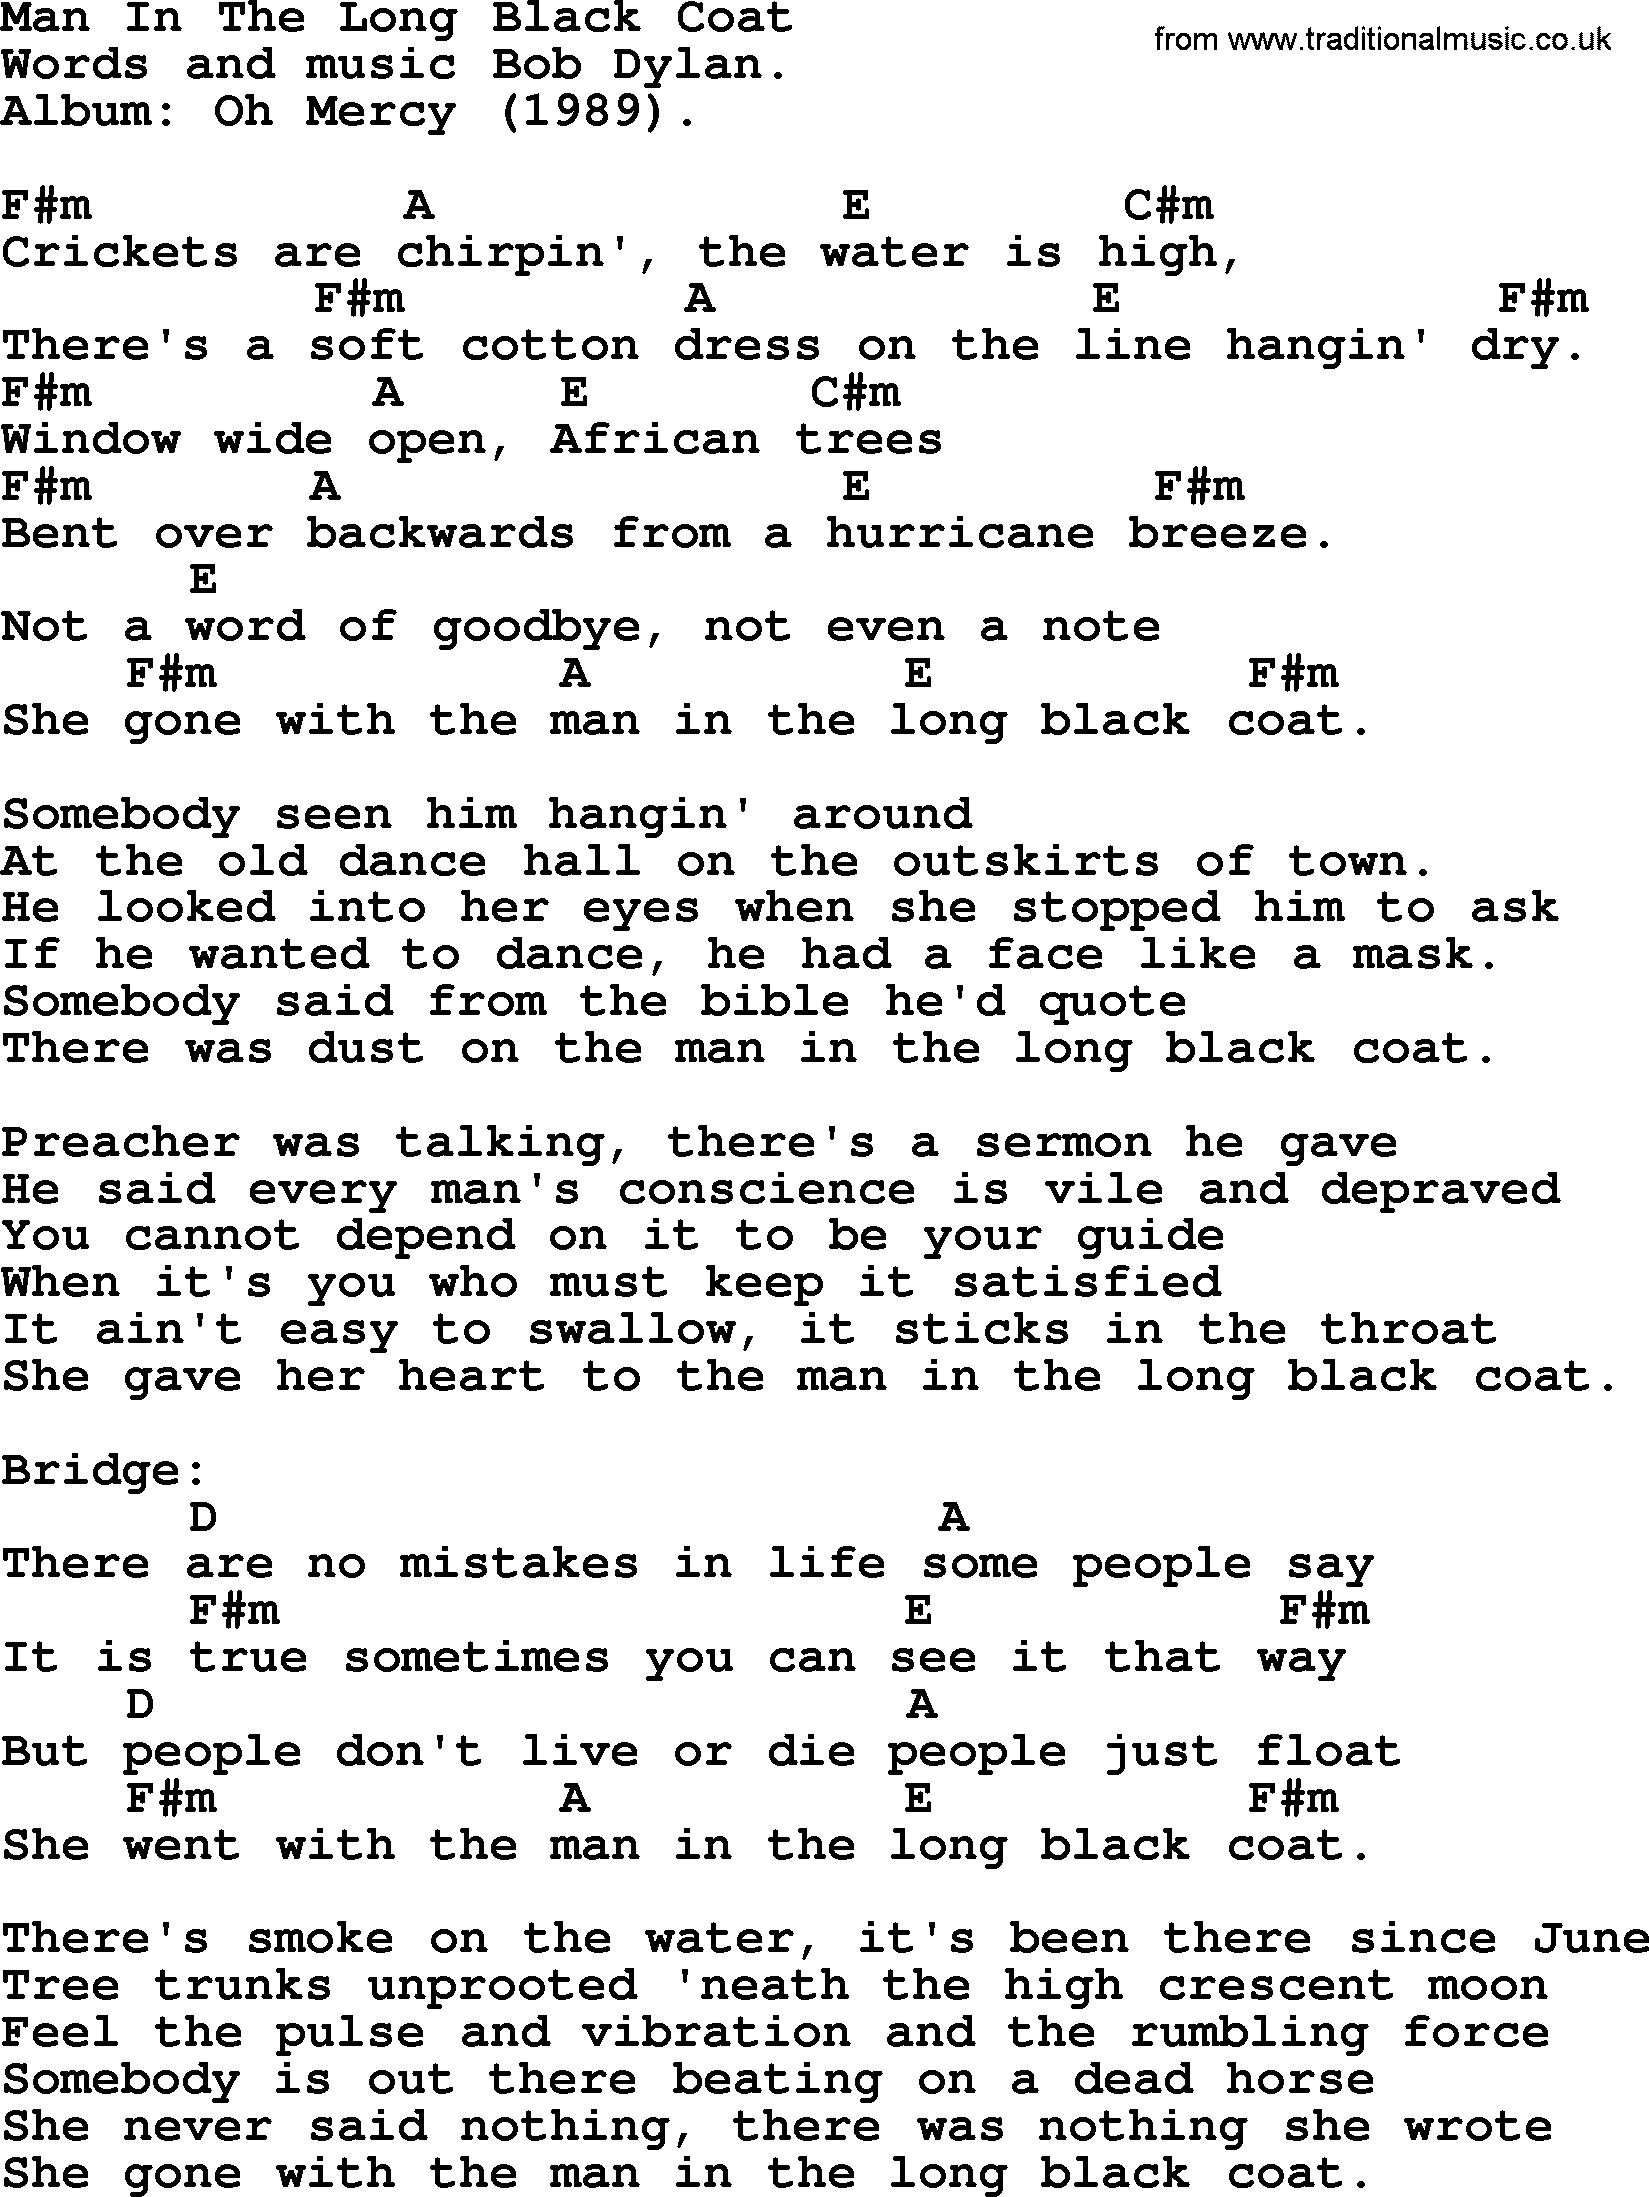 Bob Dylan song - Man In The Long Black Coat, lyrics and chords